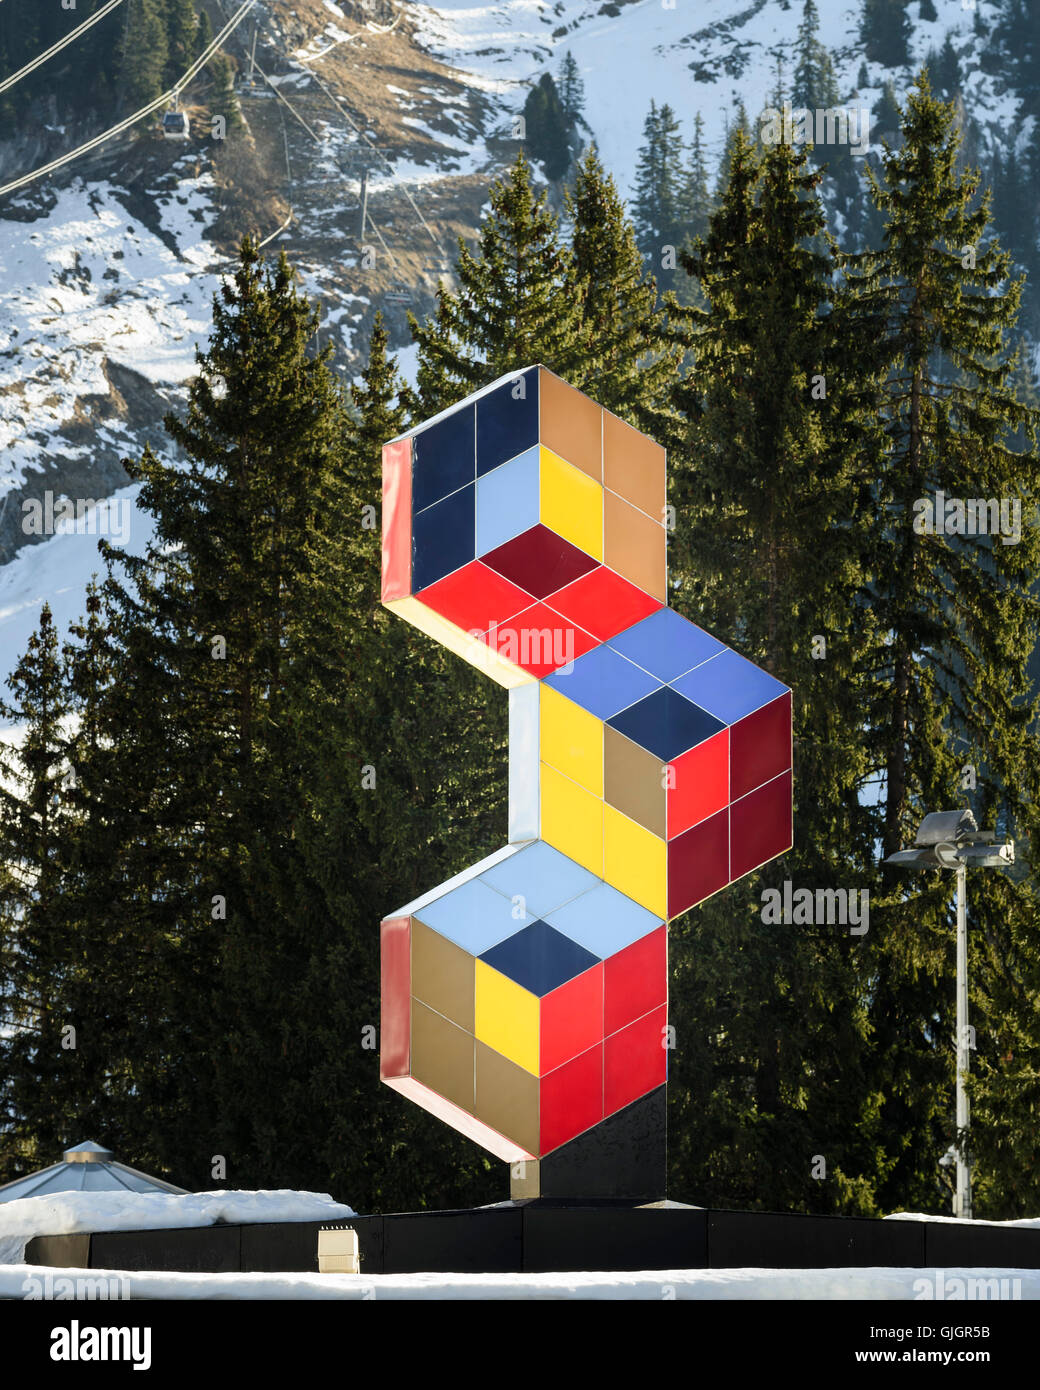 Sculpture by Victor Vasarely. Flaine, Flaine, France. Architect: Marcel Breuer, 1969. Stock Photo